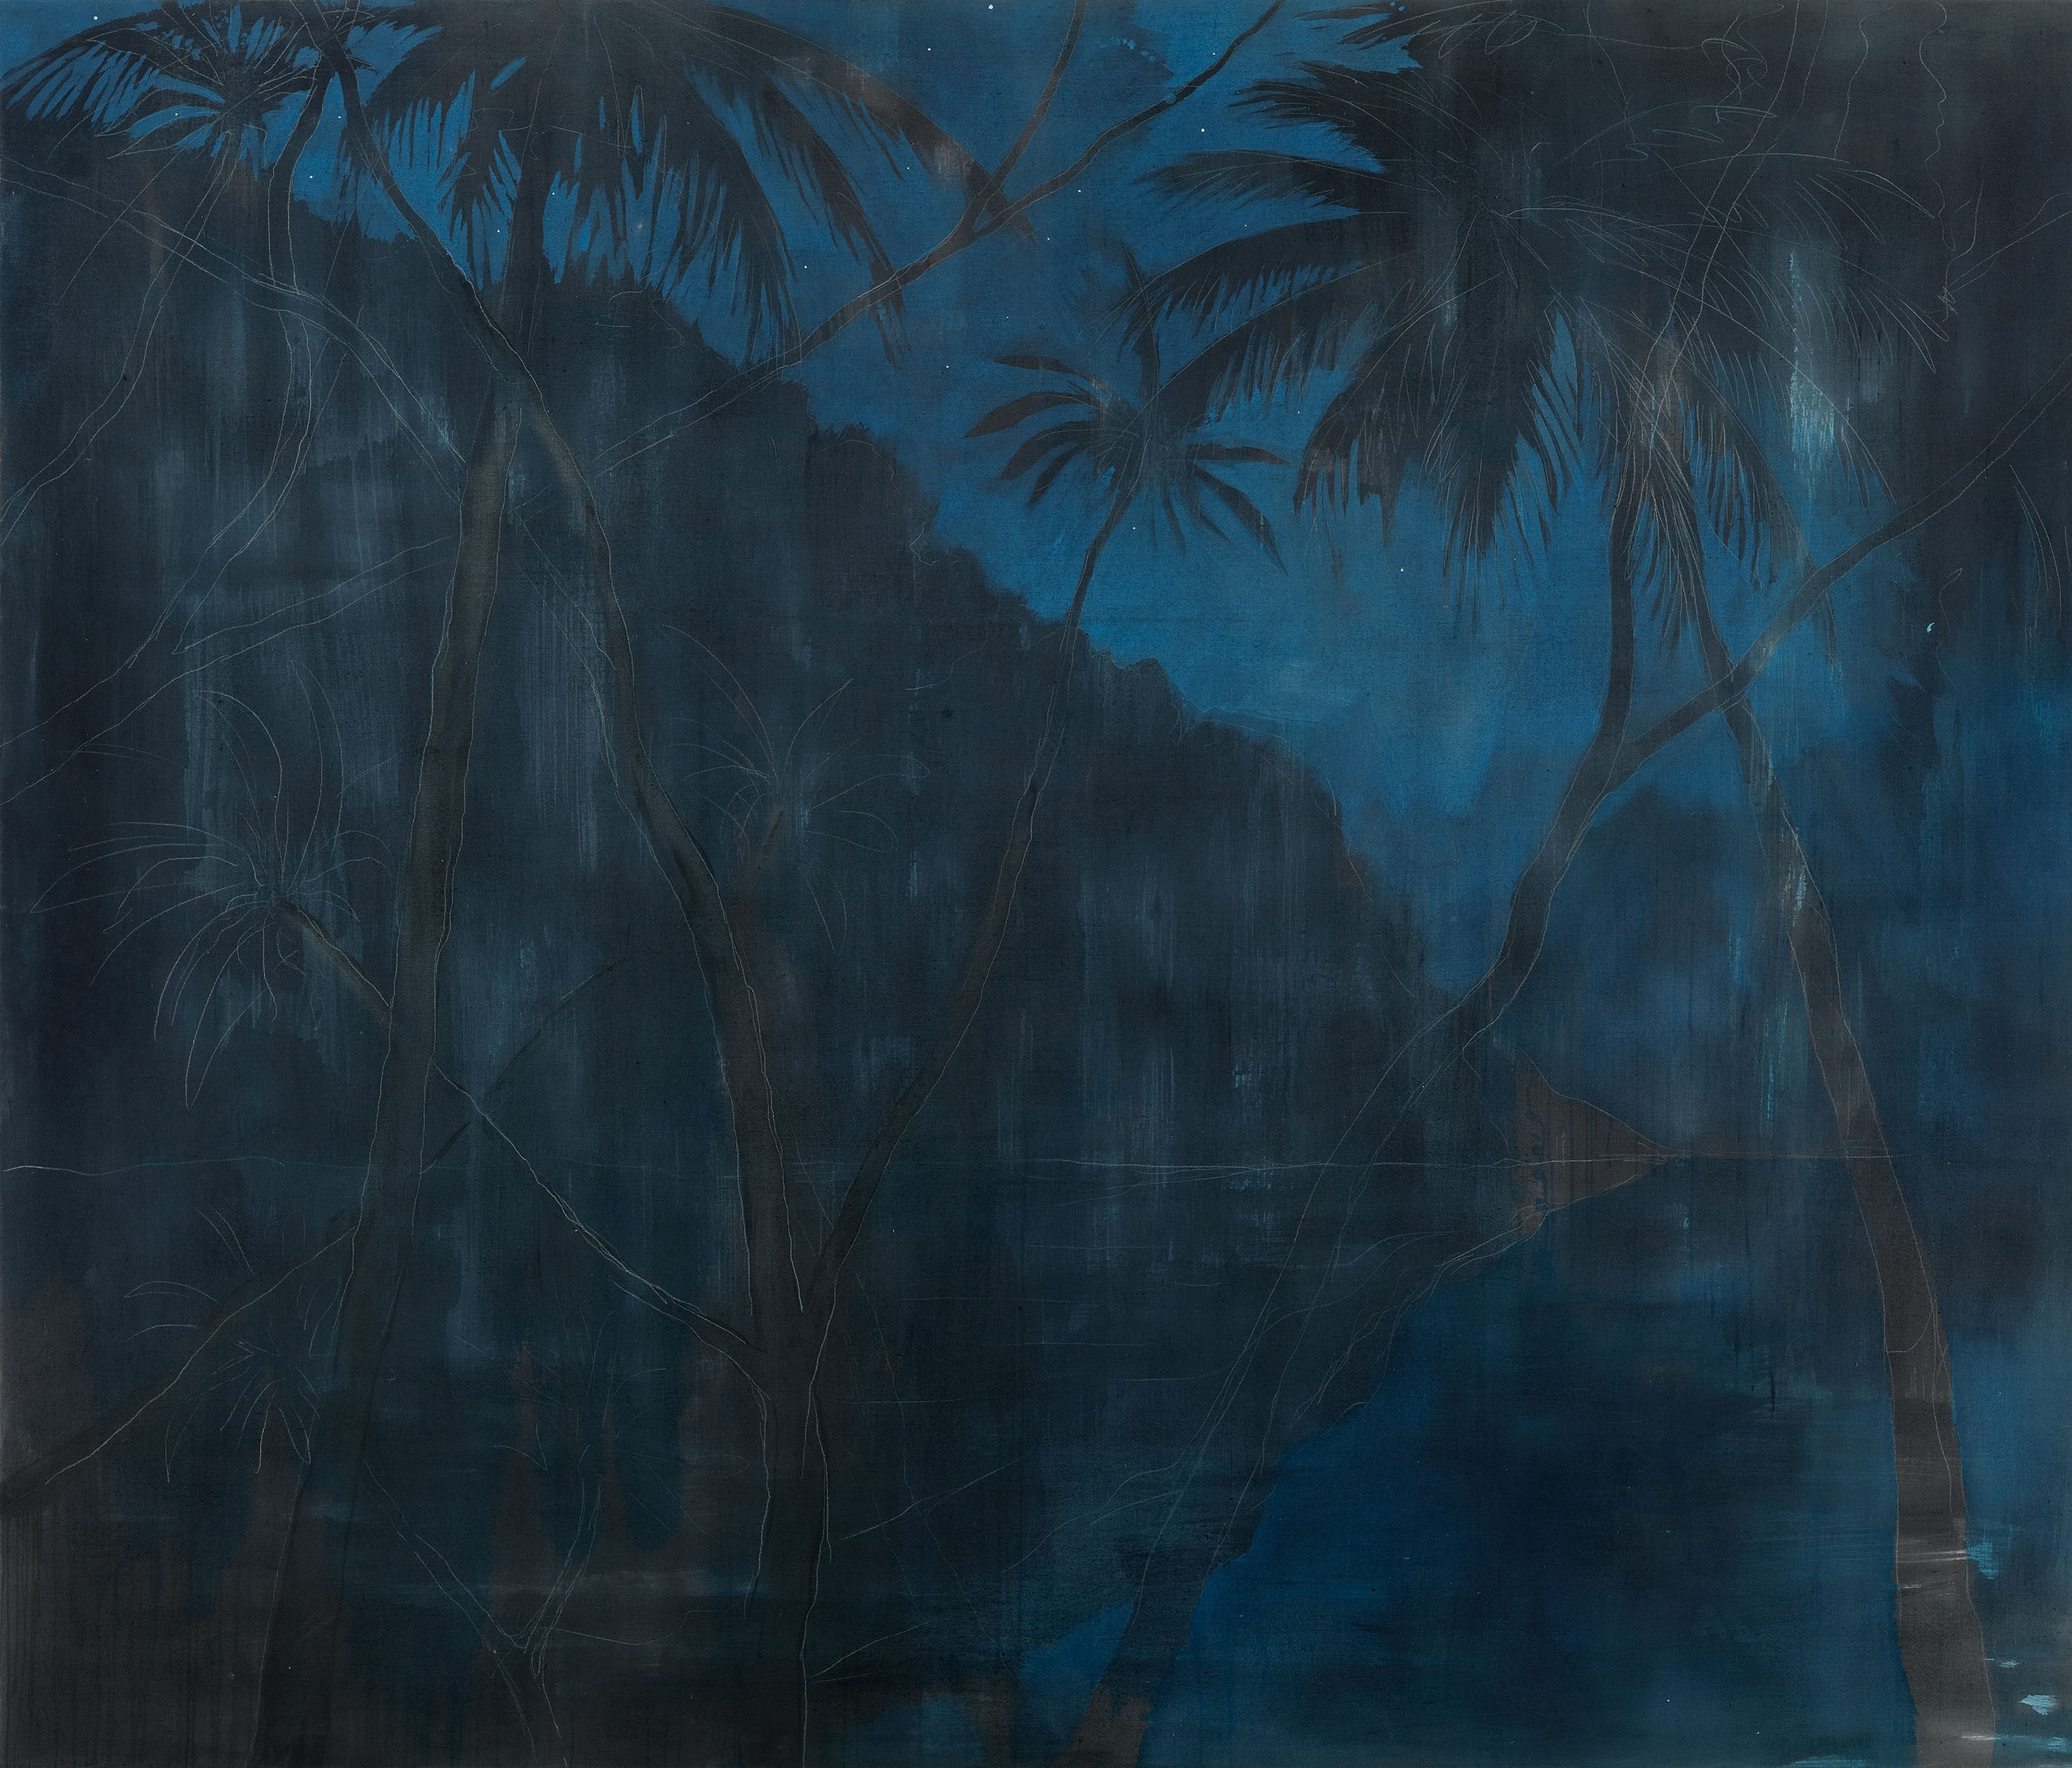 NO in the forest No. 8 : 230 x 270 cm : acrylic, canvas : 2019 :